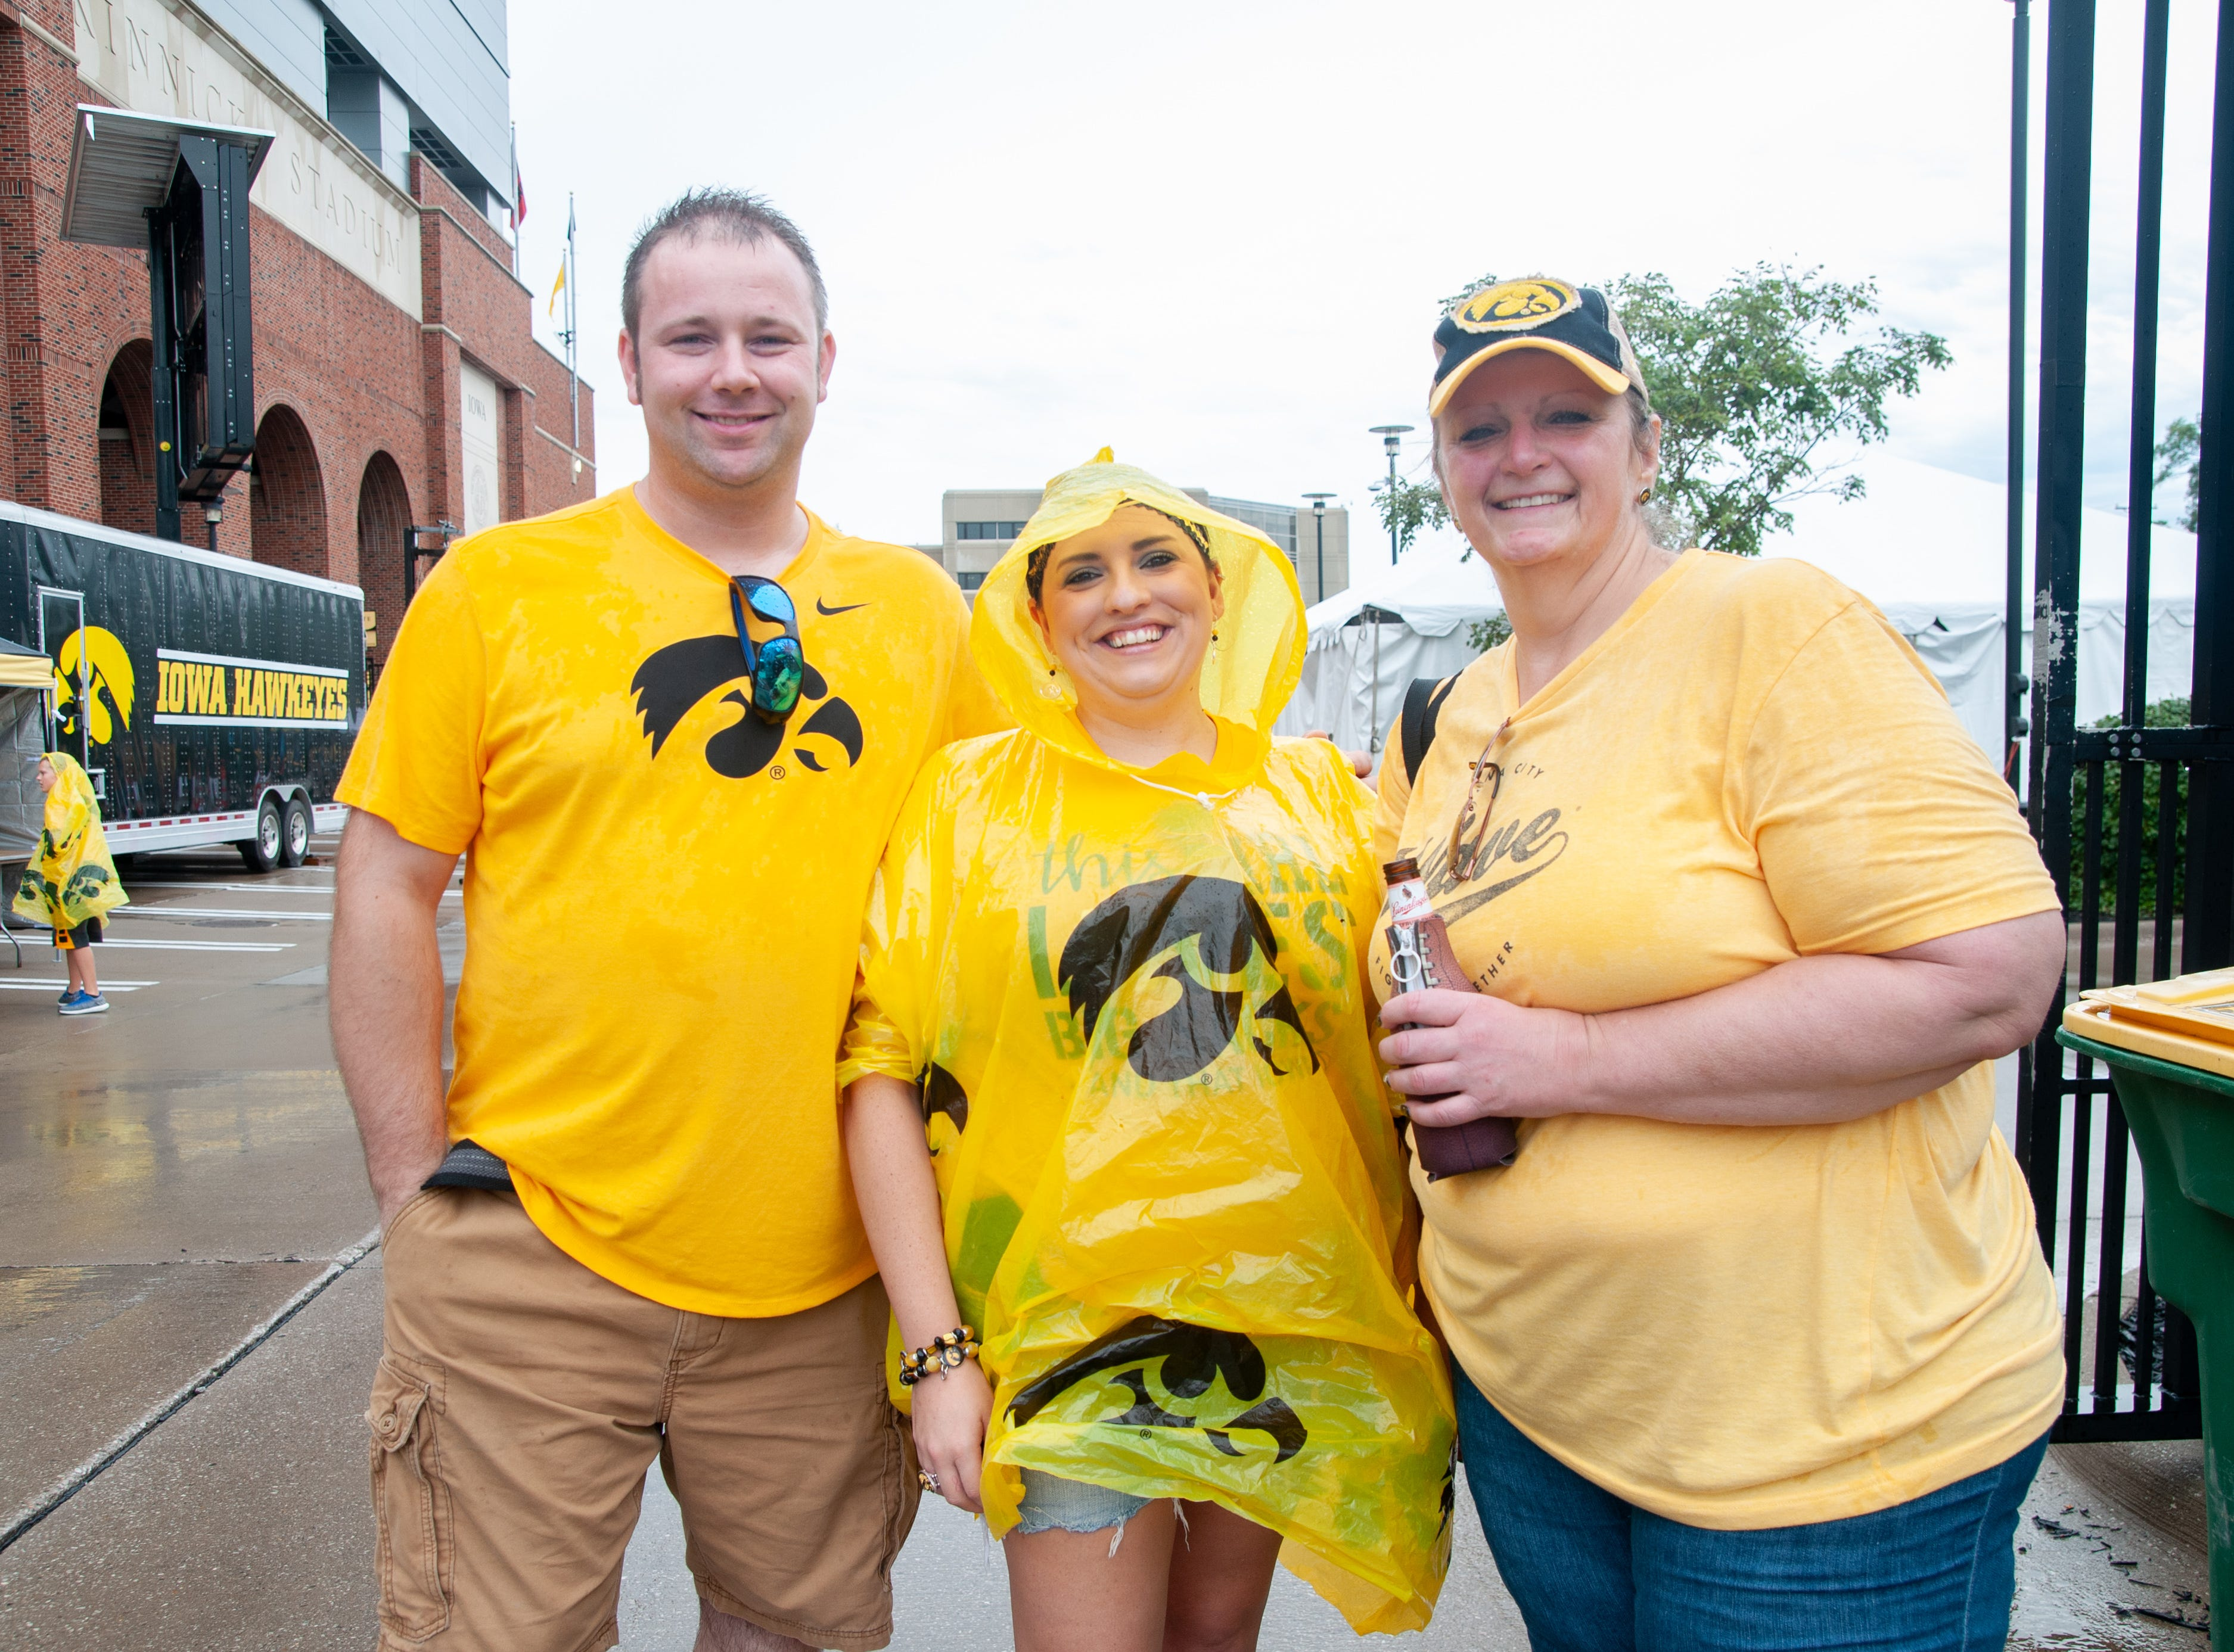 Andy Pettyjohn, 34, (left), Alicia Schoolcraft, 32, and Vicki Ballou, 50, of Pella, Centerville and Keota, Saturday, Sept. 1, 2018, while tailgating before the Iowa game against Northern Illinois in Iowa City.